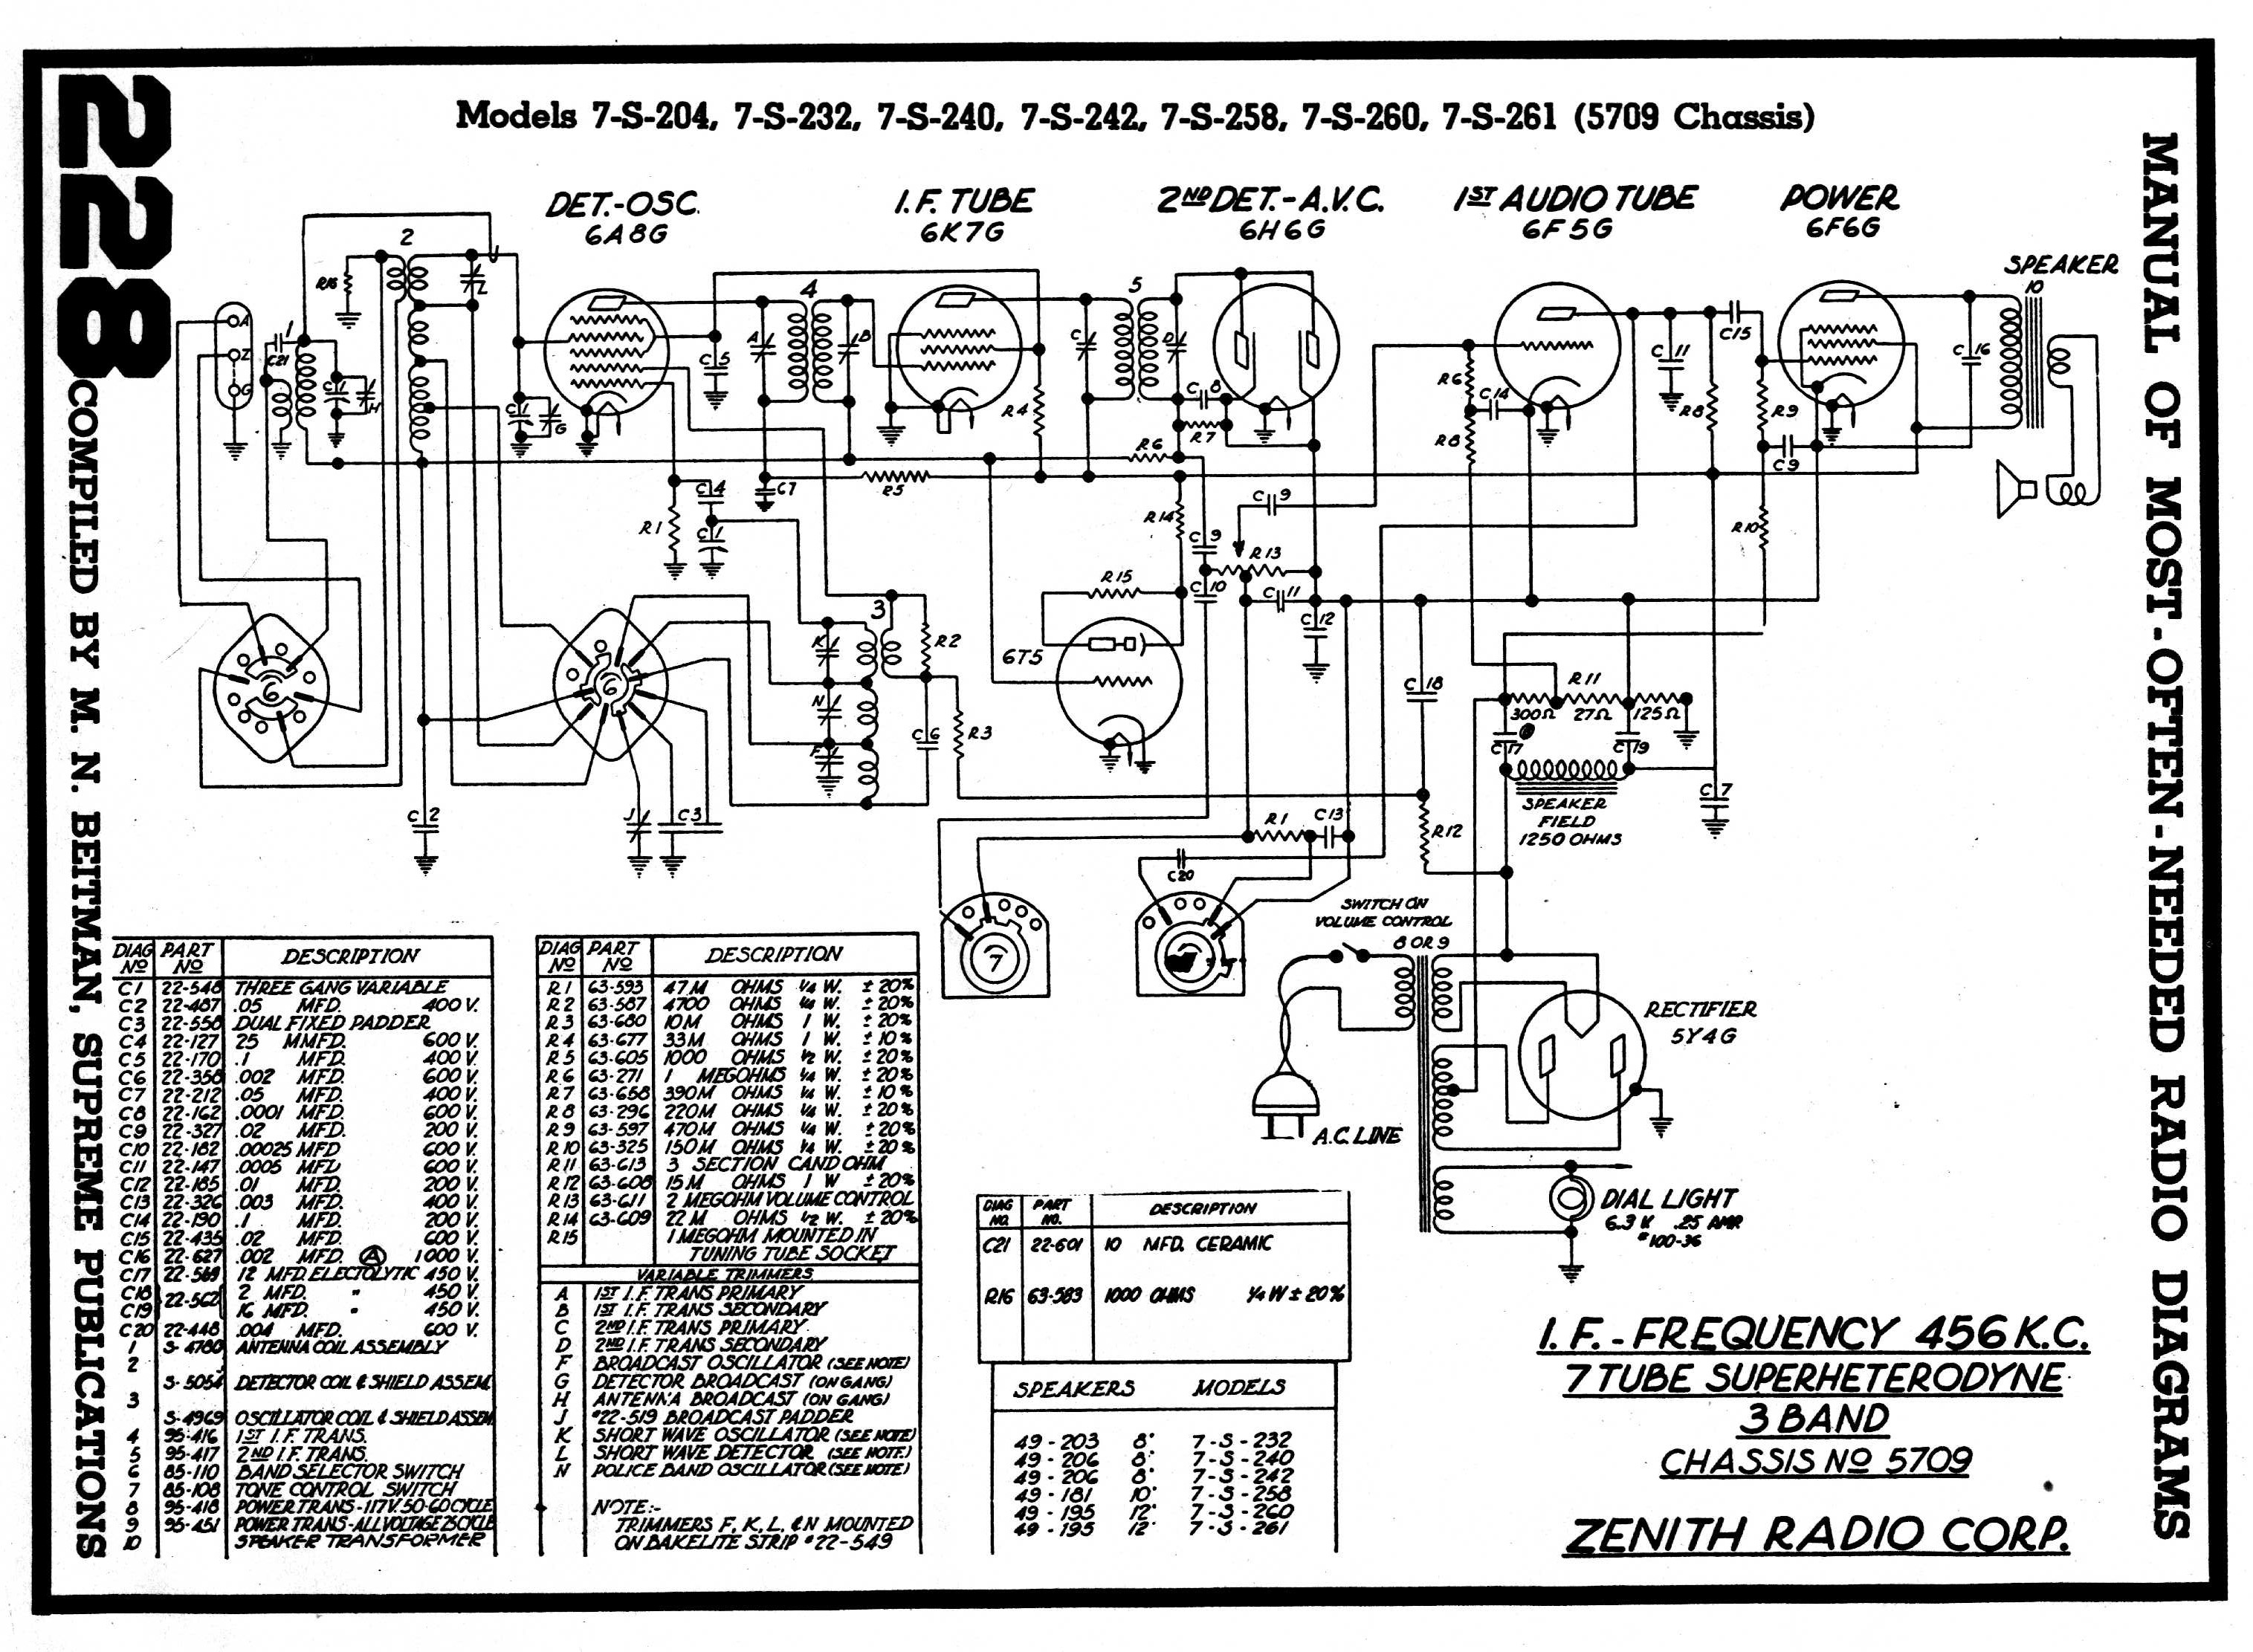 Diagrams And Service Data For Zenith 7 S 260